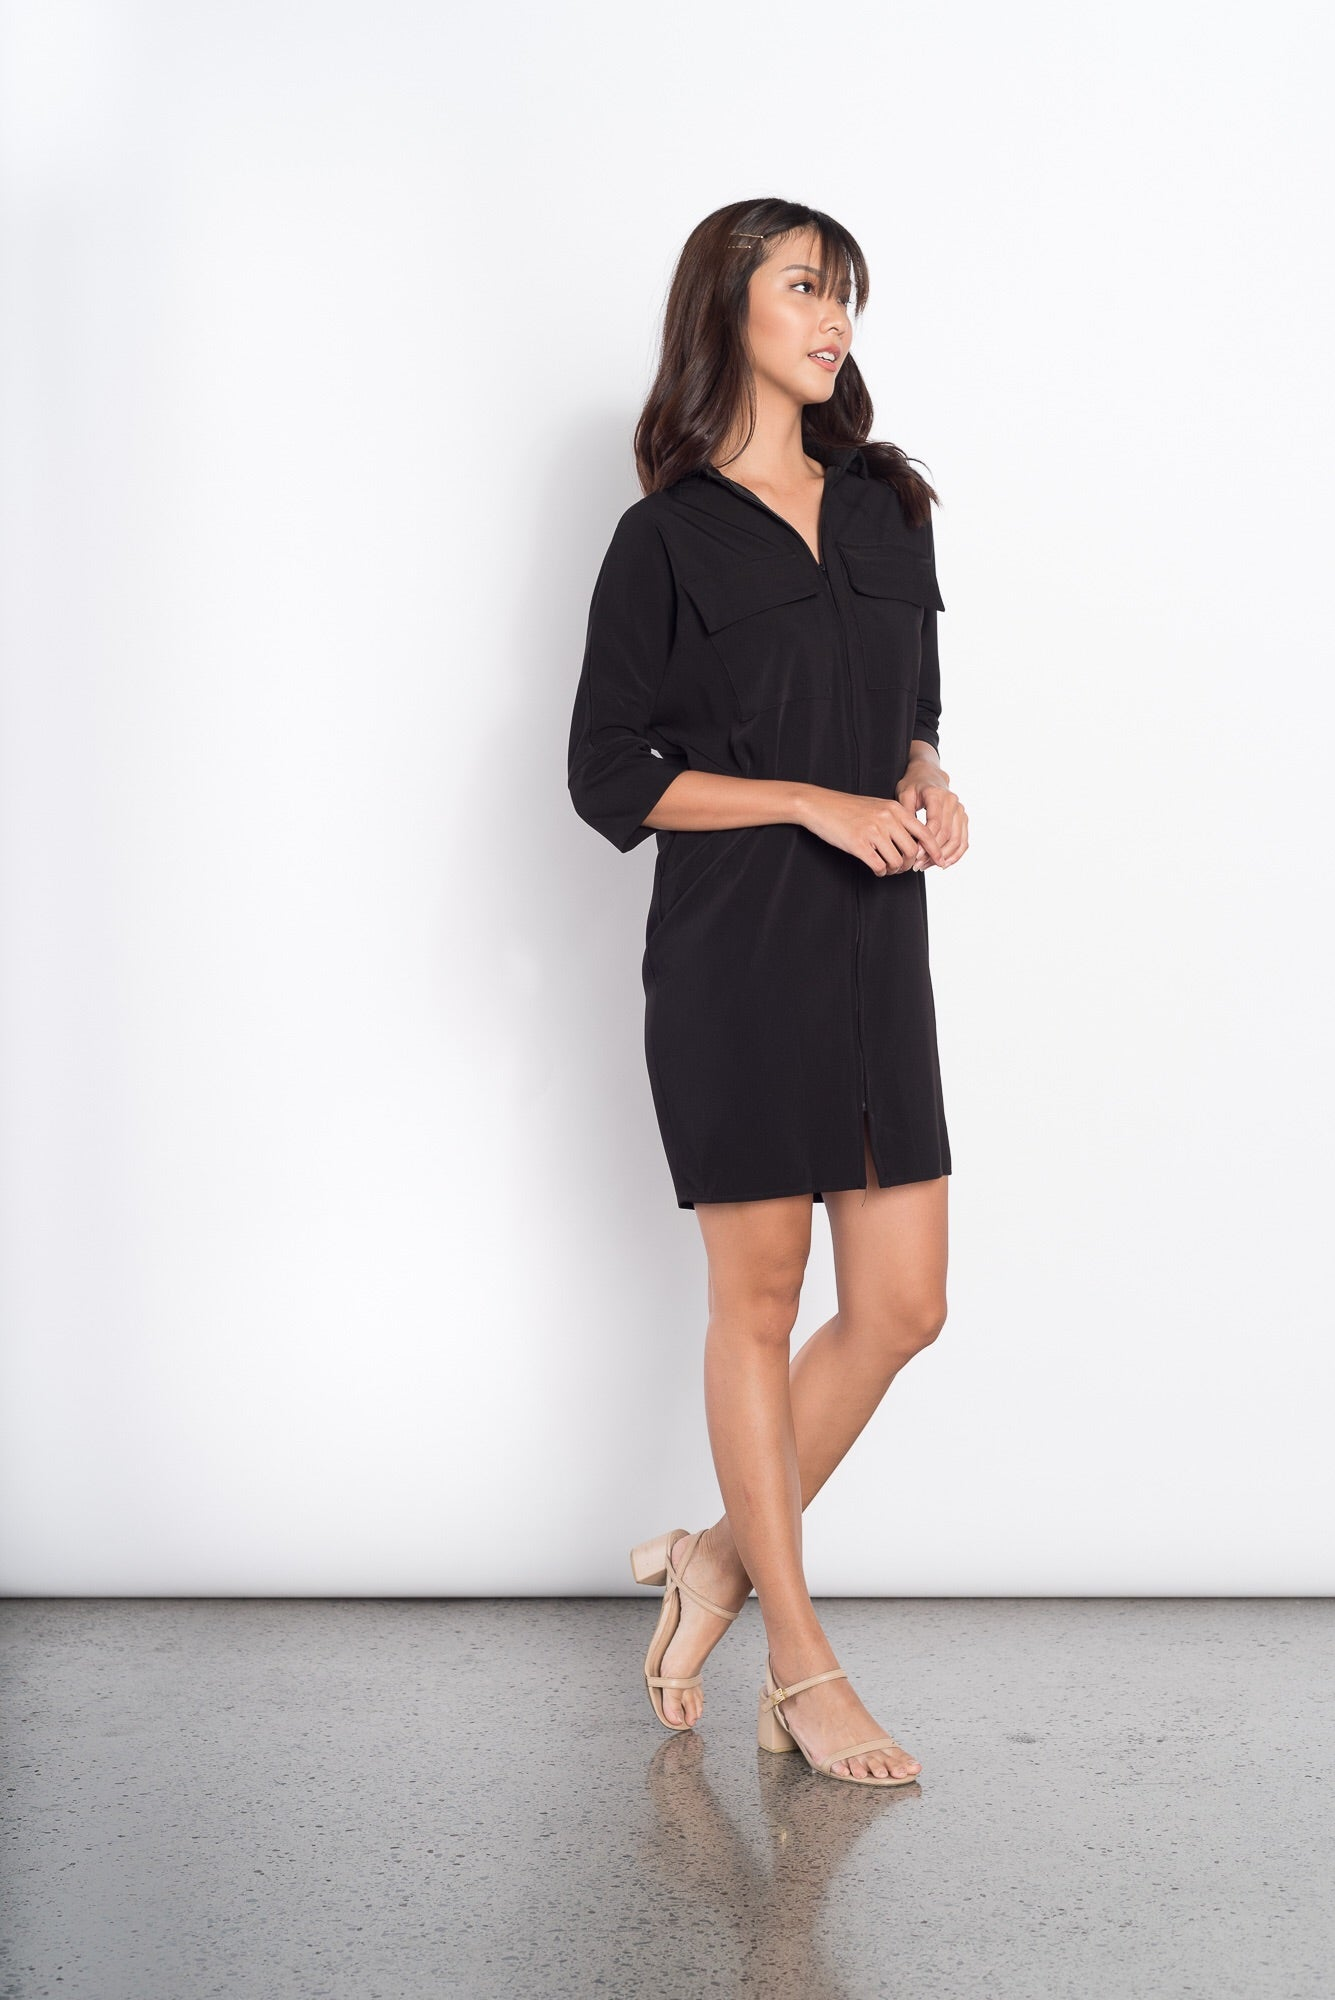 Freda 3/4 2 Pocket Dress in Black